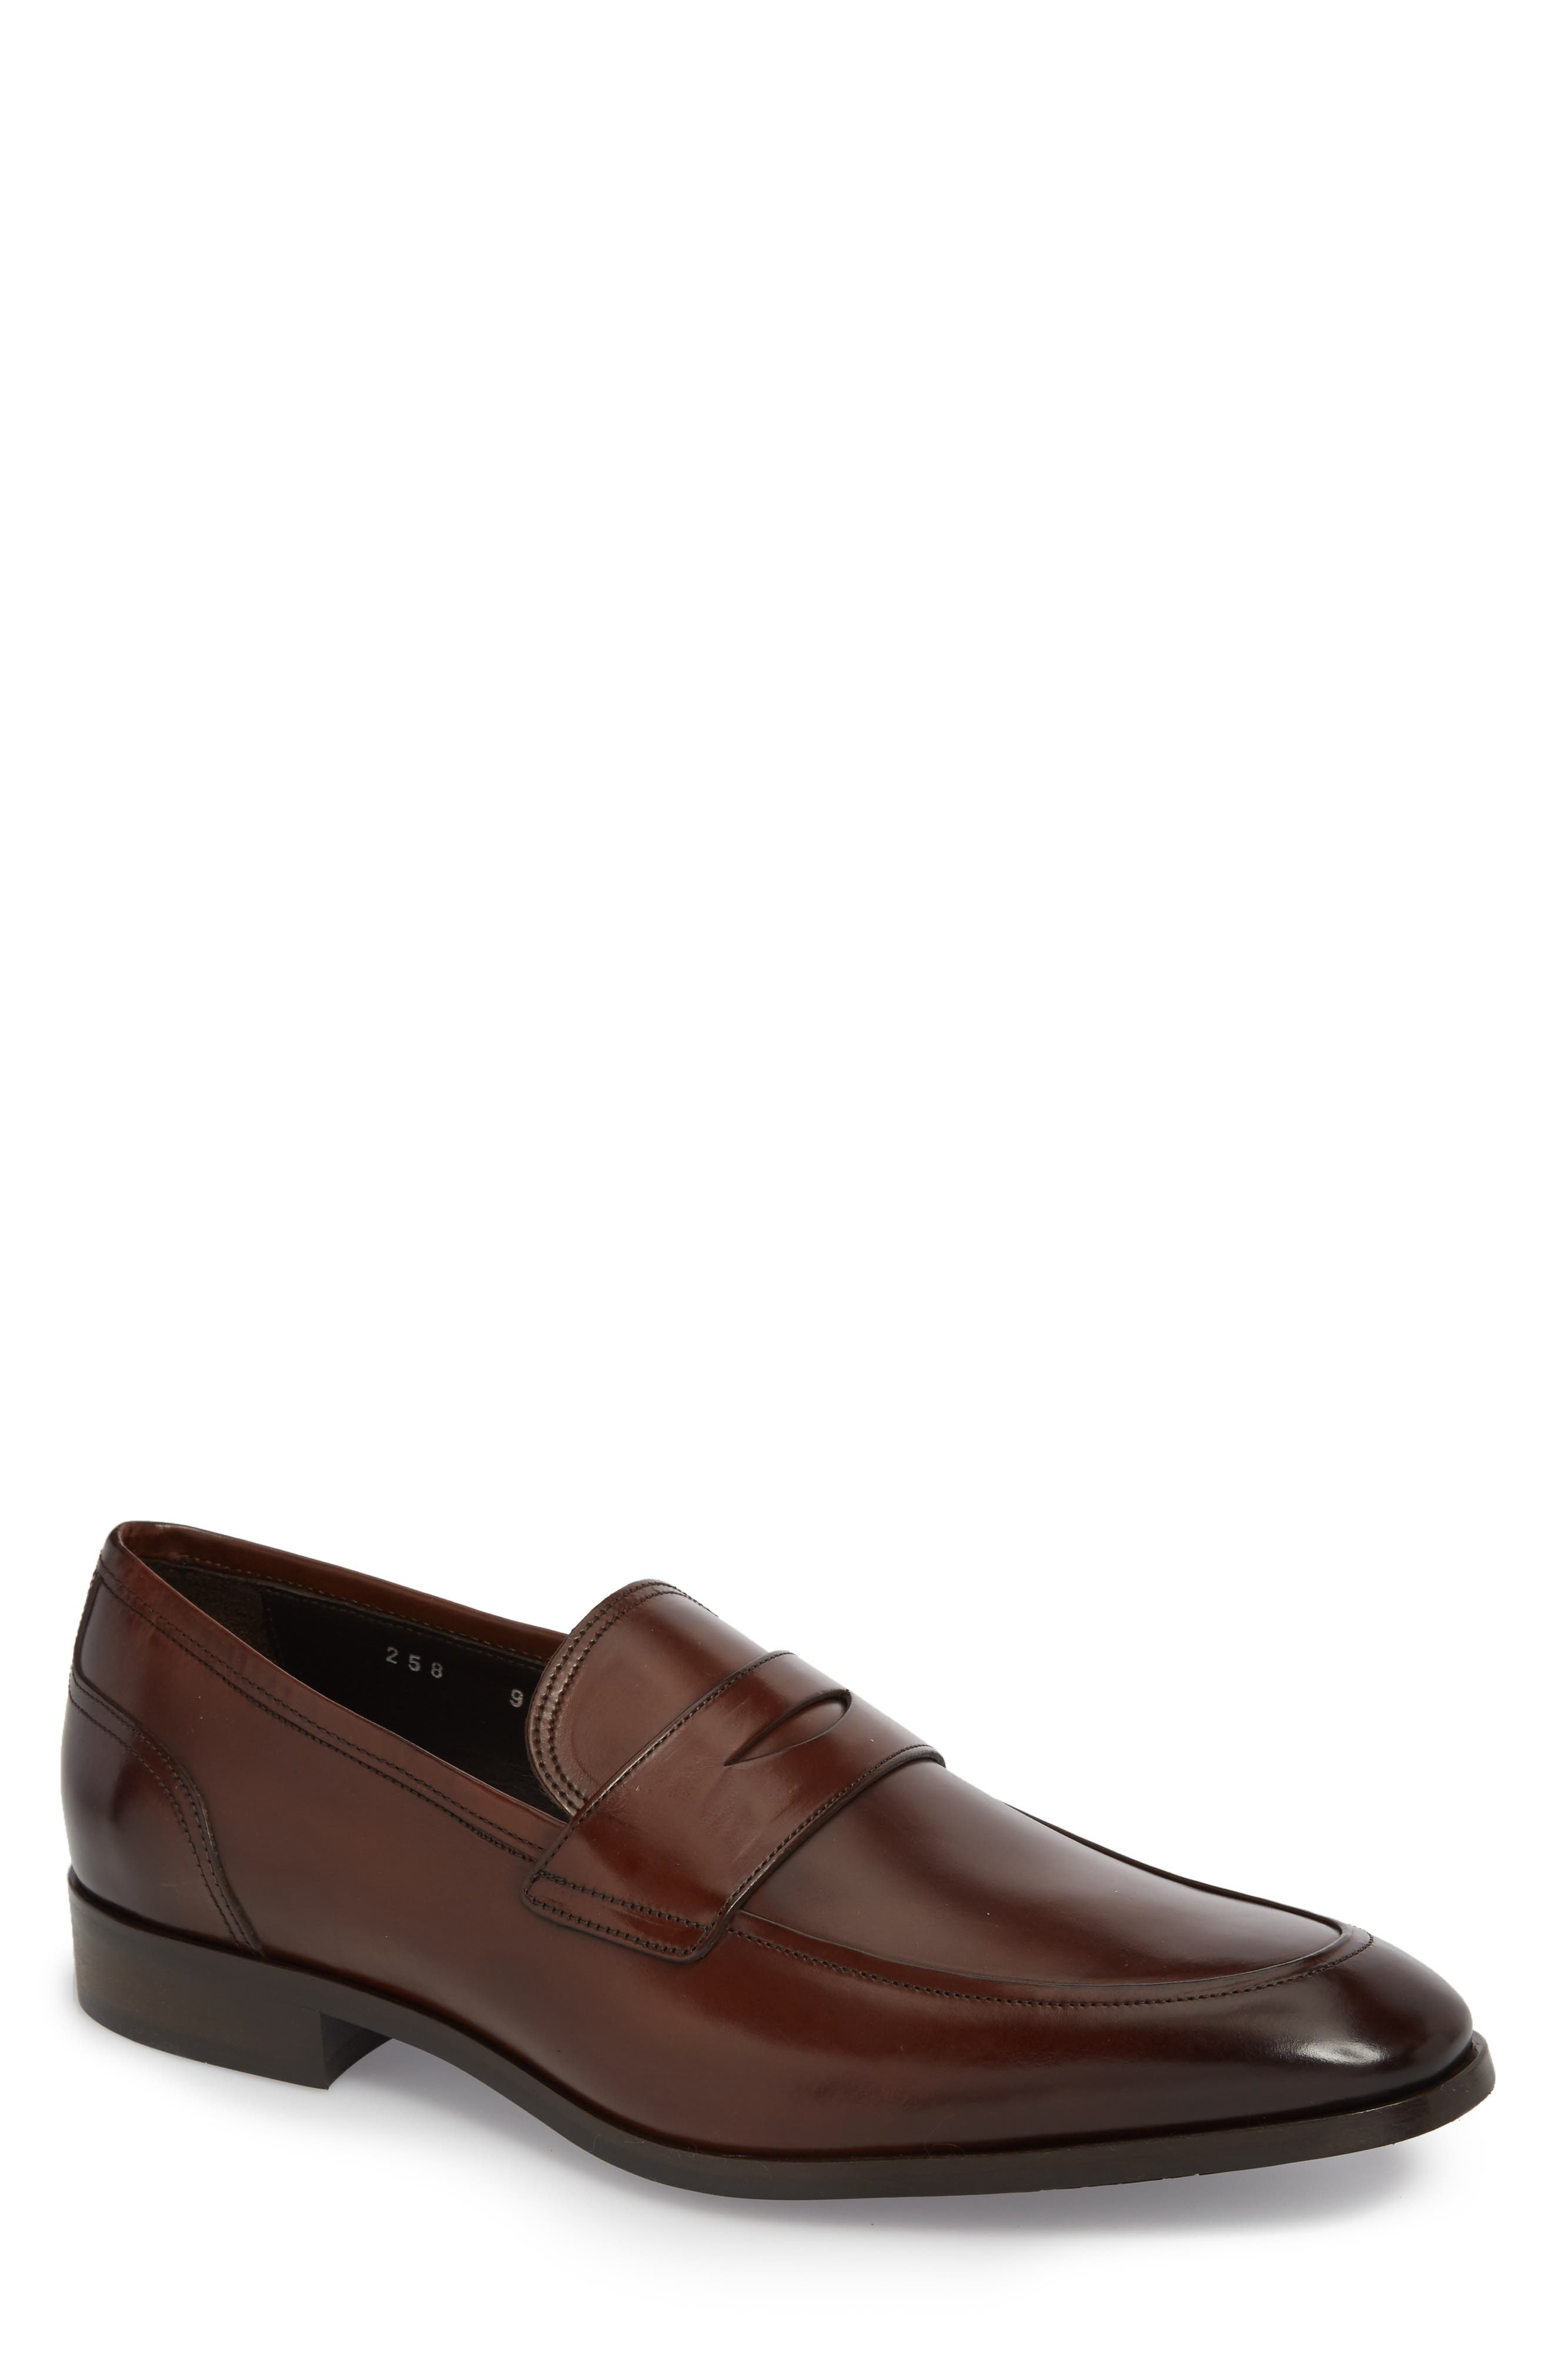 Deane Penny Loafer,                             Main thumbnail 1, color,                             Marrone Leather